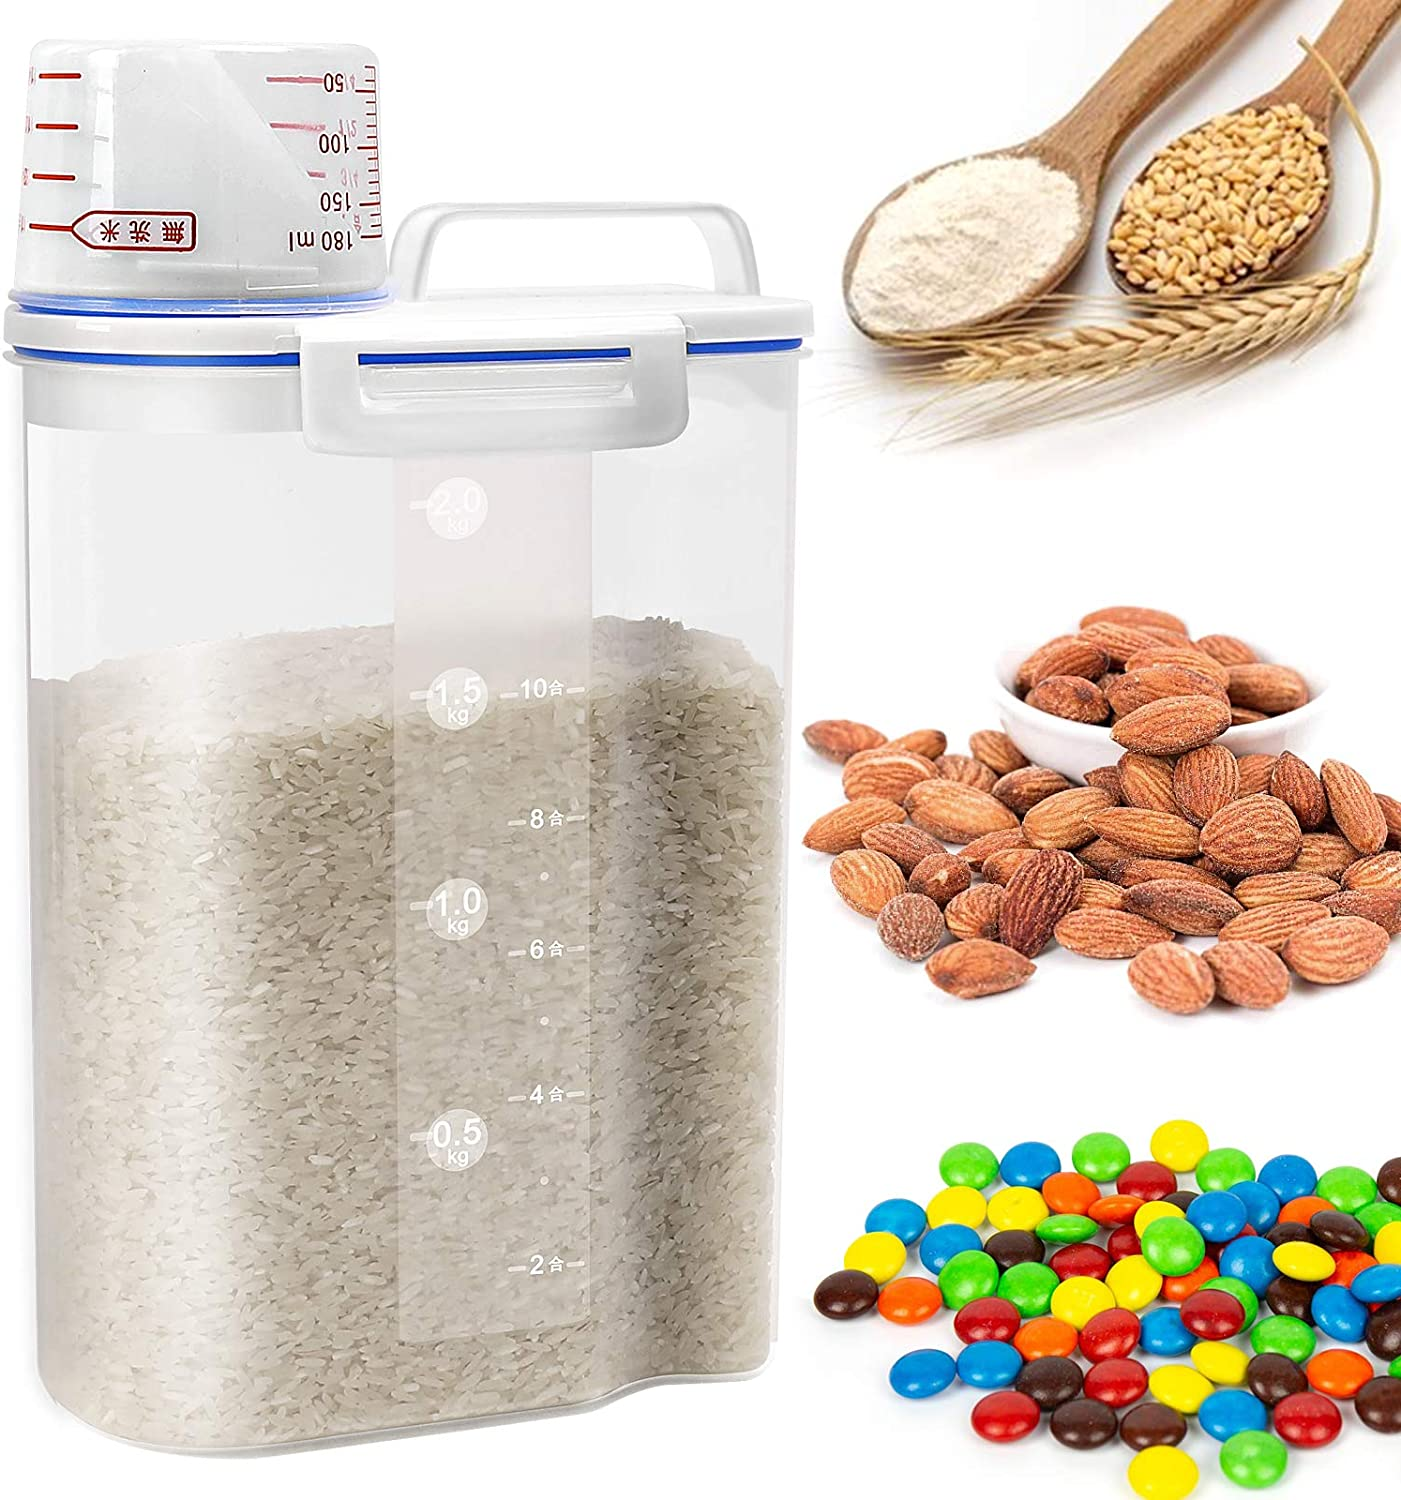 Rice Cereal Container Storage - Airtight Dry Food Rice Container Storage BPA Free Plastic Small Rice Dispenser with Measuring Cup Pour Spout for Rice Cereal Beans Flour Sugar - 4.4LB/2KG